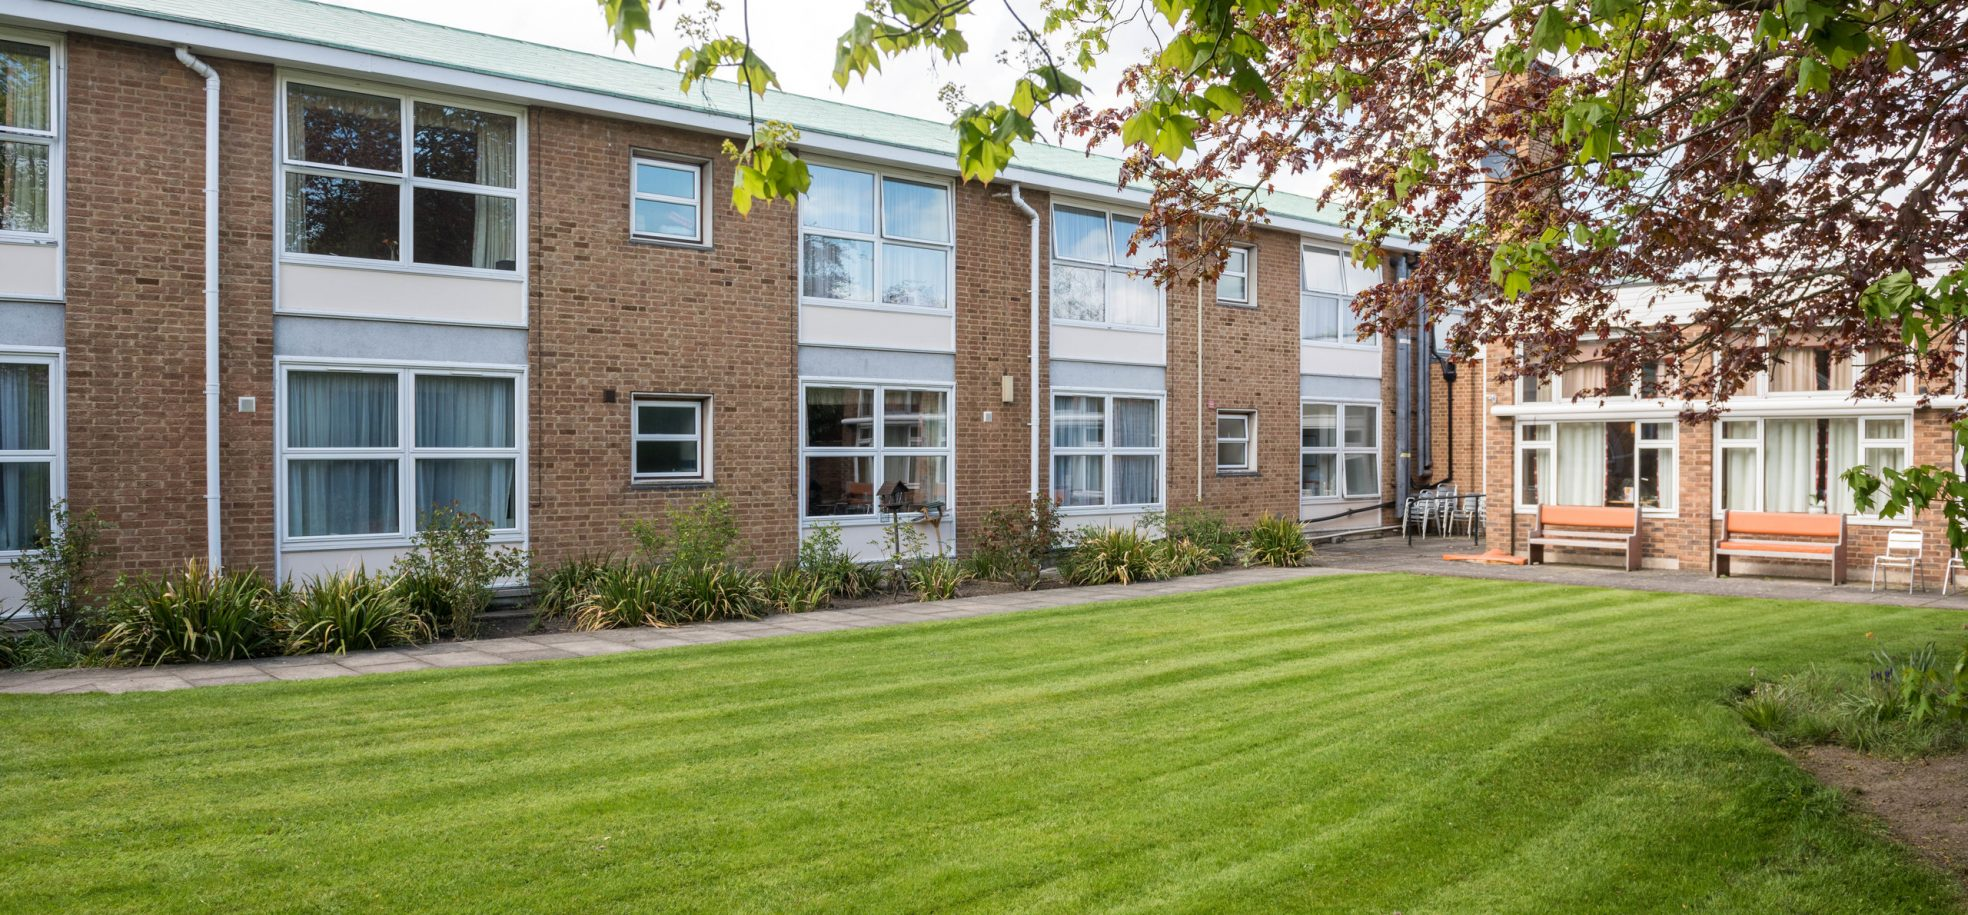 Building and gardens at Prince George Duke of Kent Court